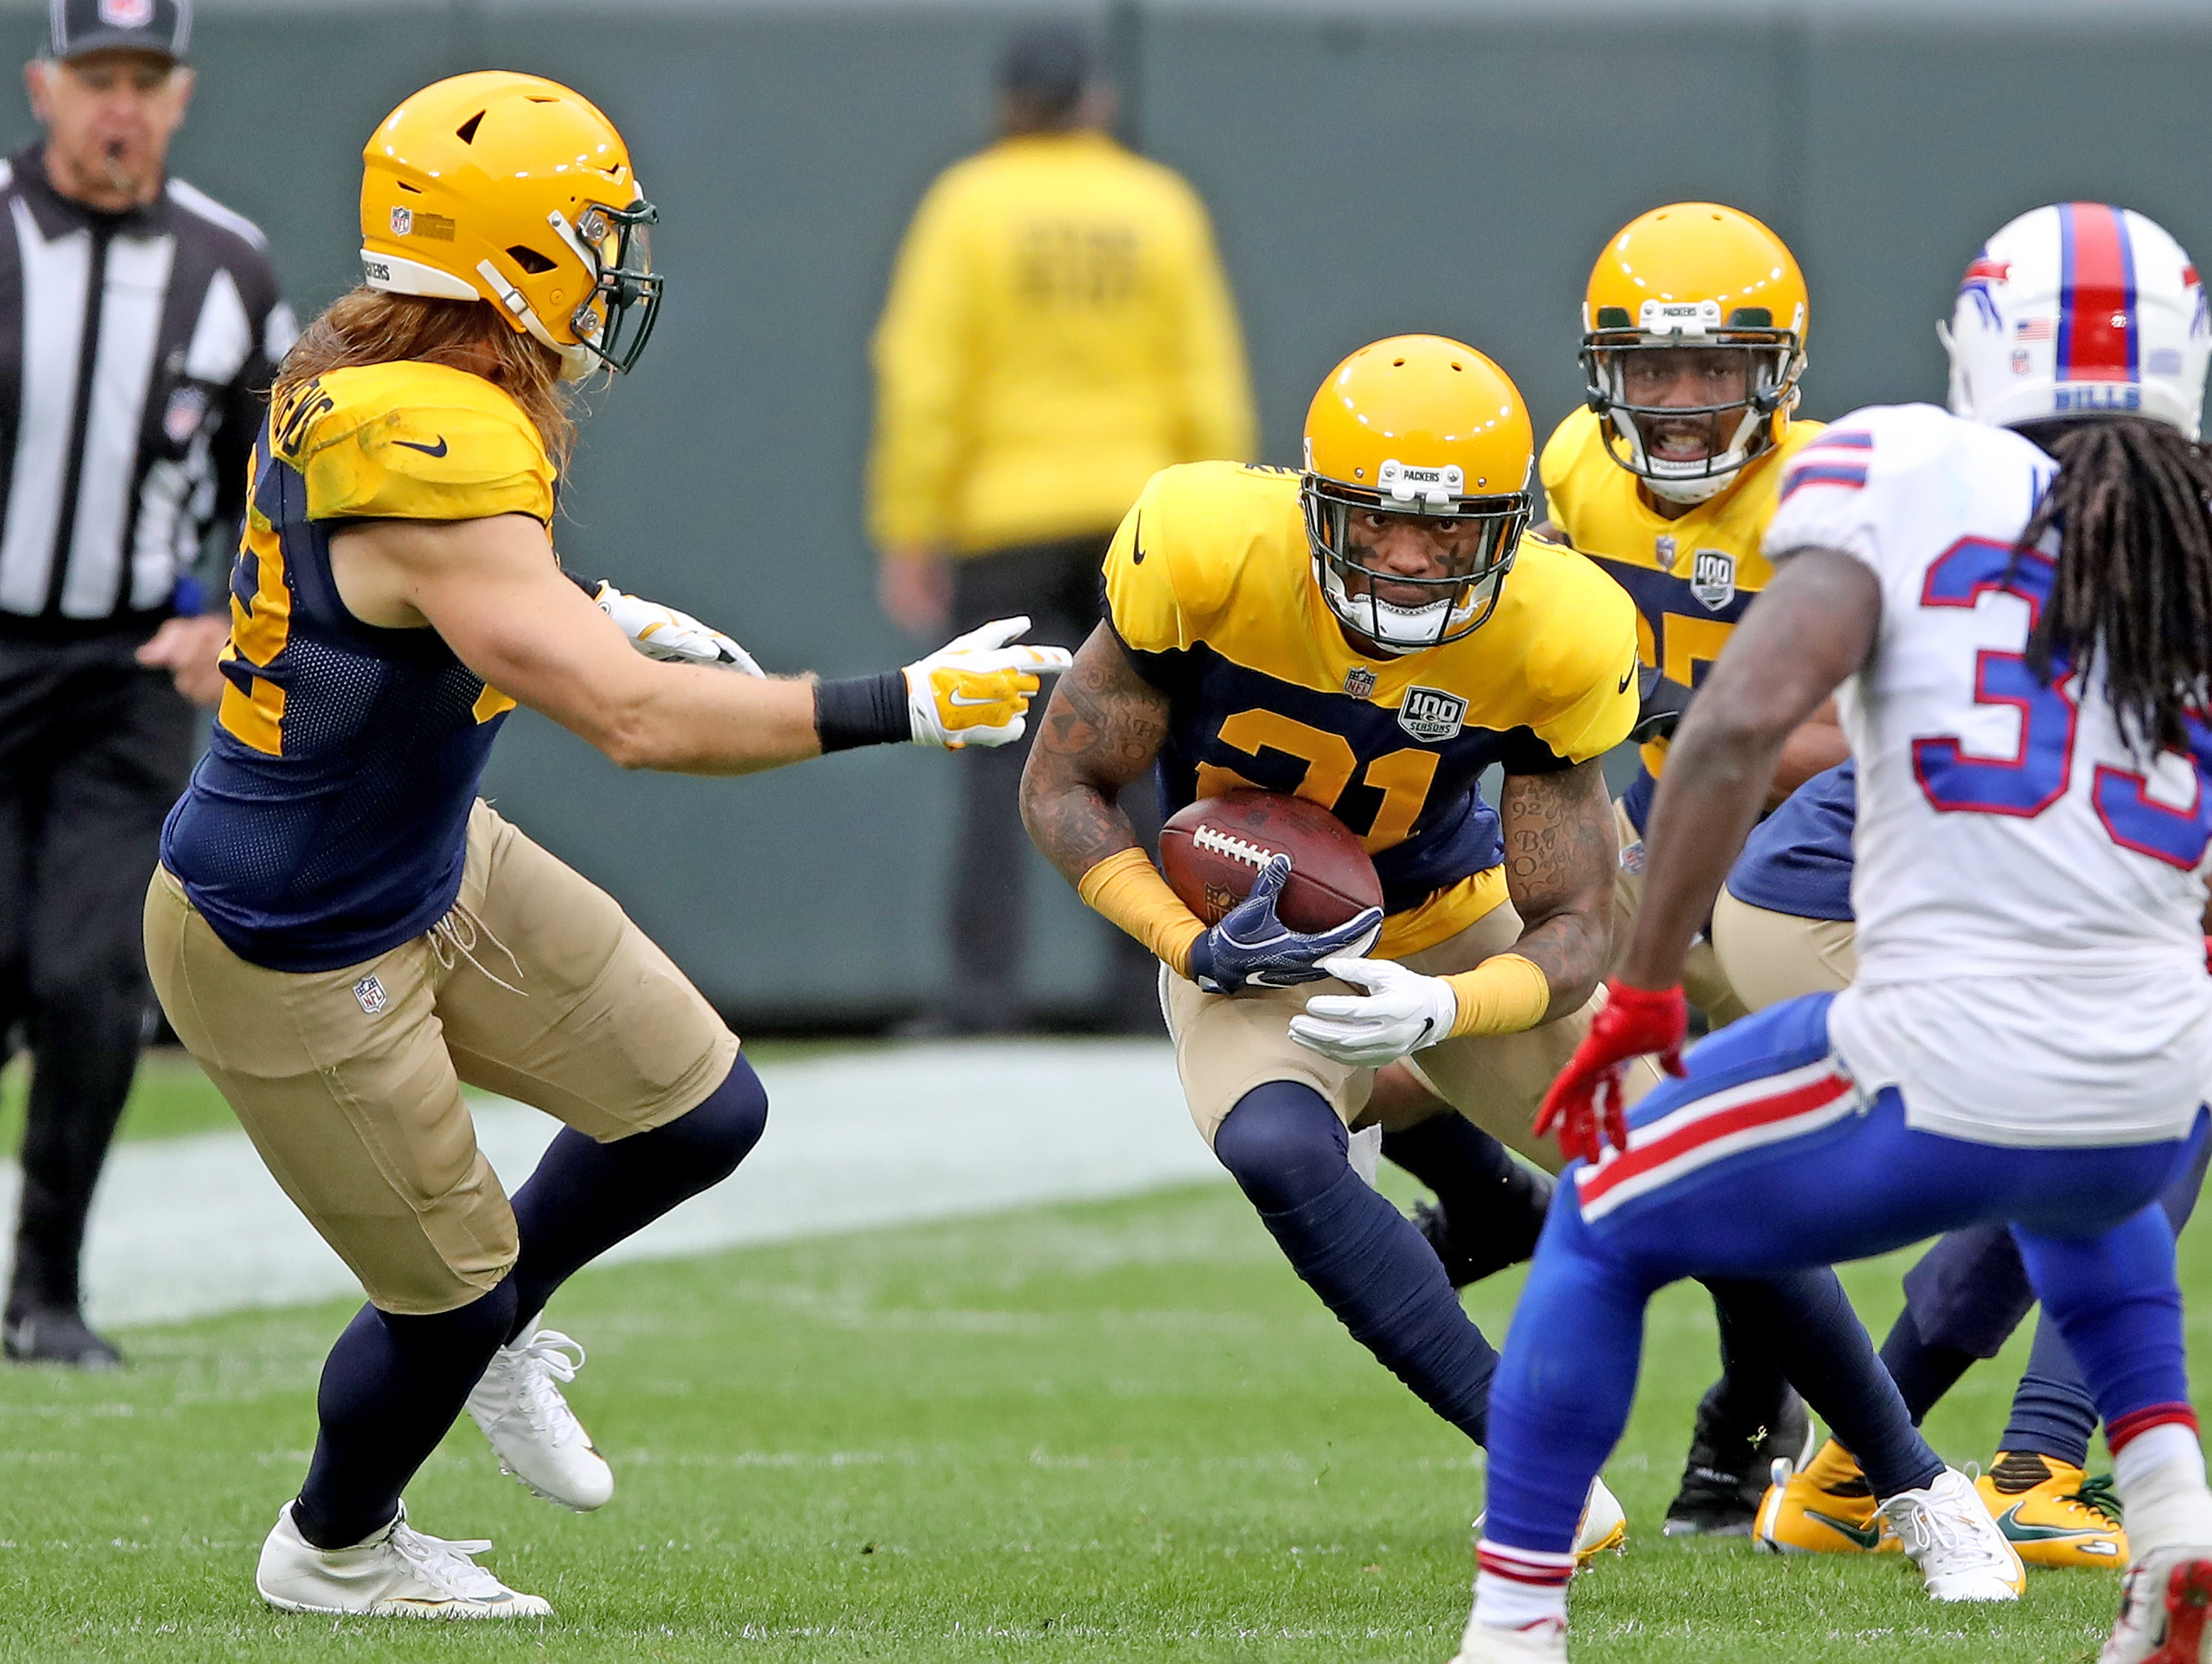 Green Bay Packers defensive back Ha Ha Clinton-Dix (21) returns his interception against the Buffalo Bills Sunday September 30, 2018 at Lambeau Field in Green Bay, Wis.